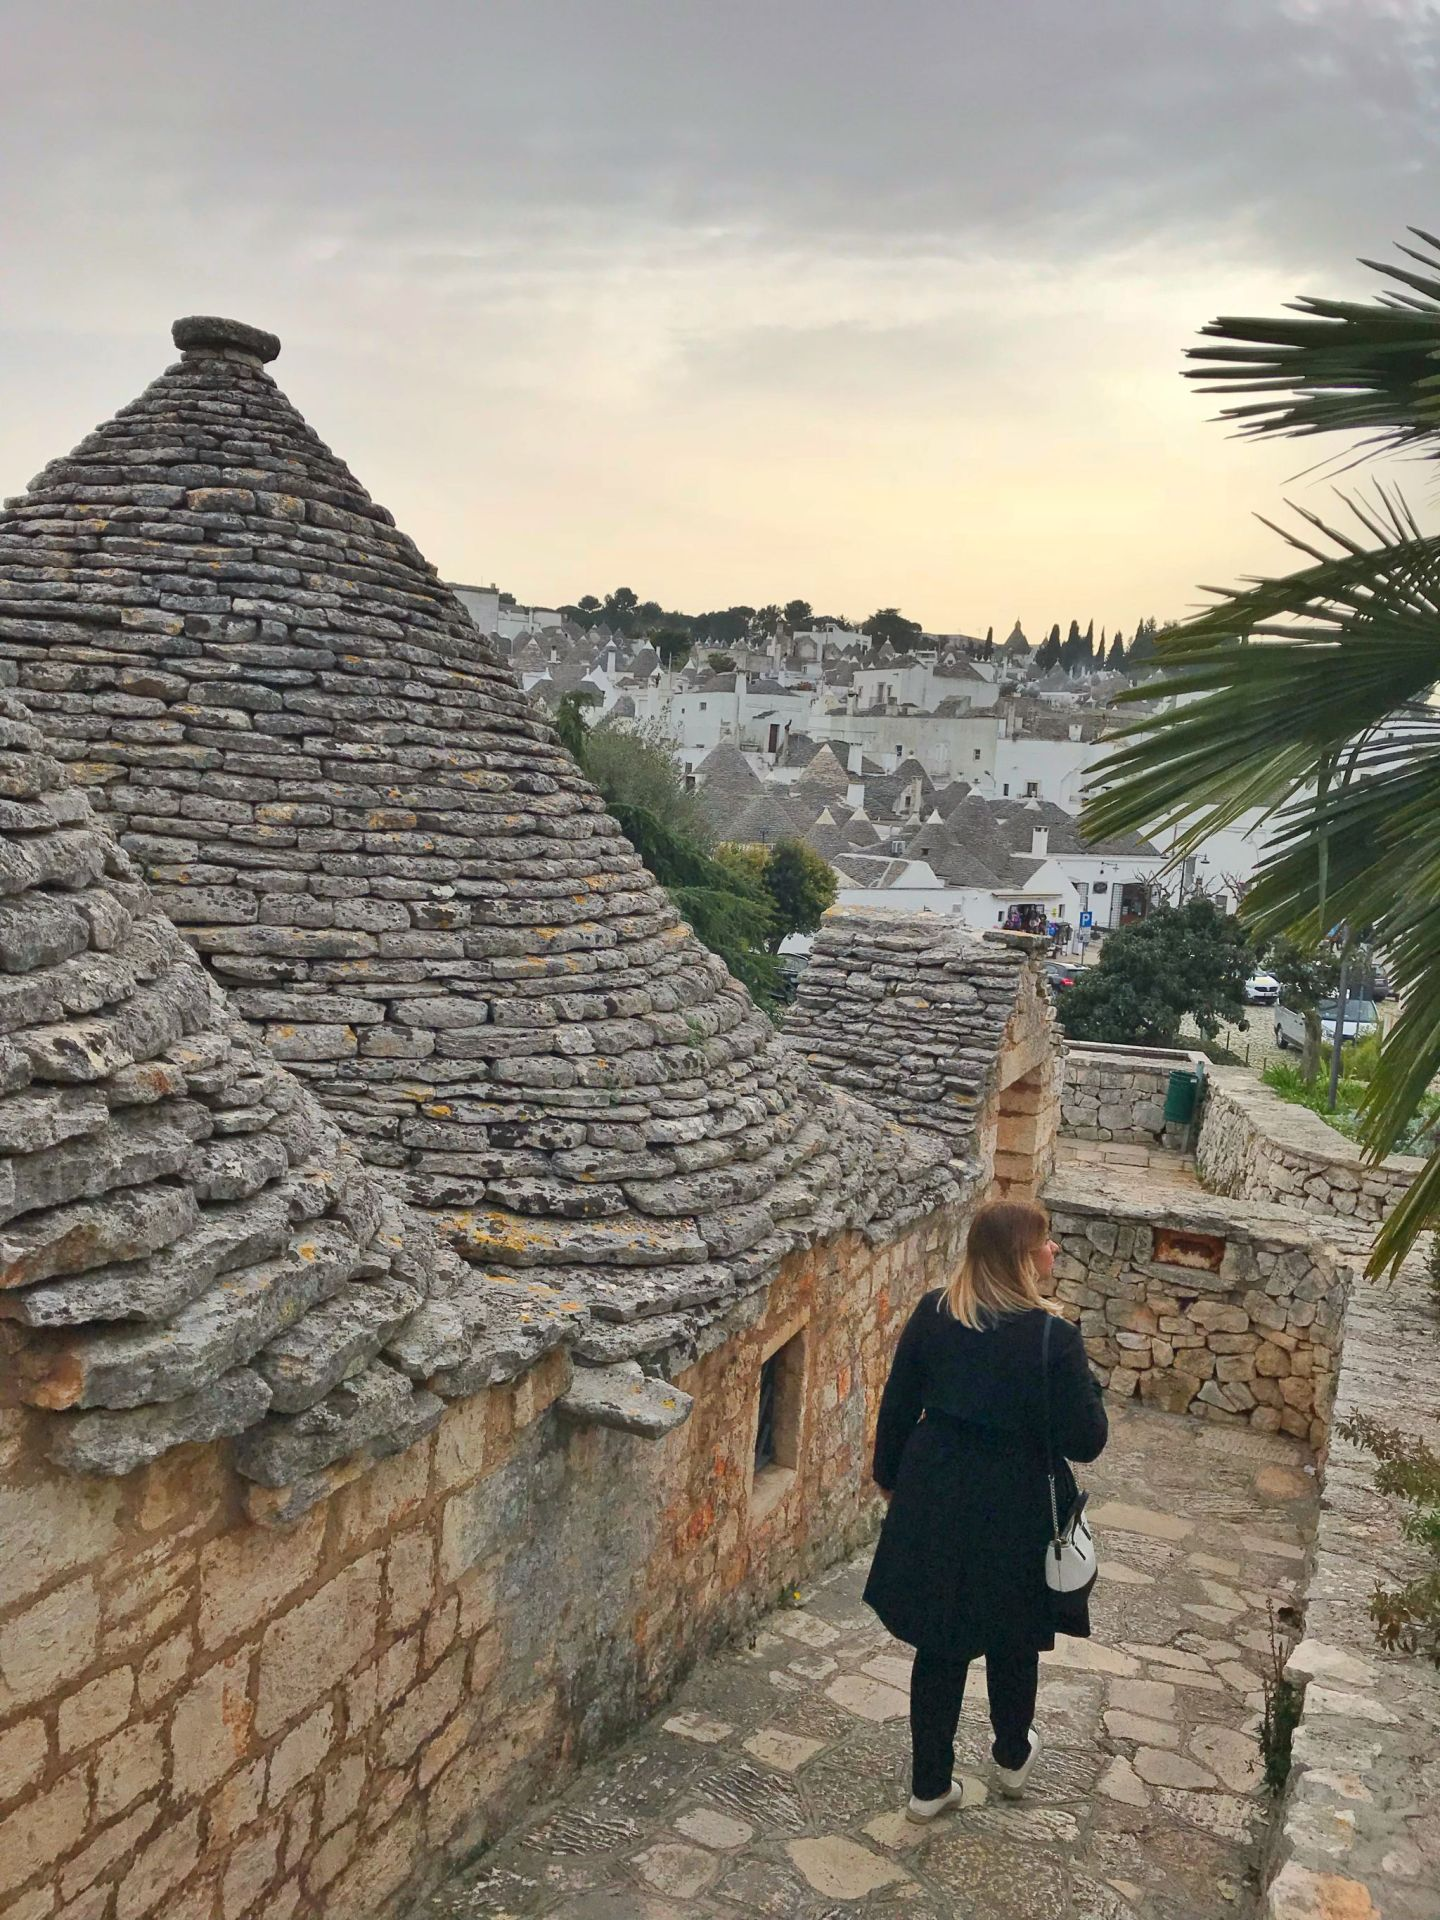 Exploring stone walkways and Trullo houses in Alberobello